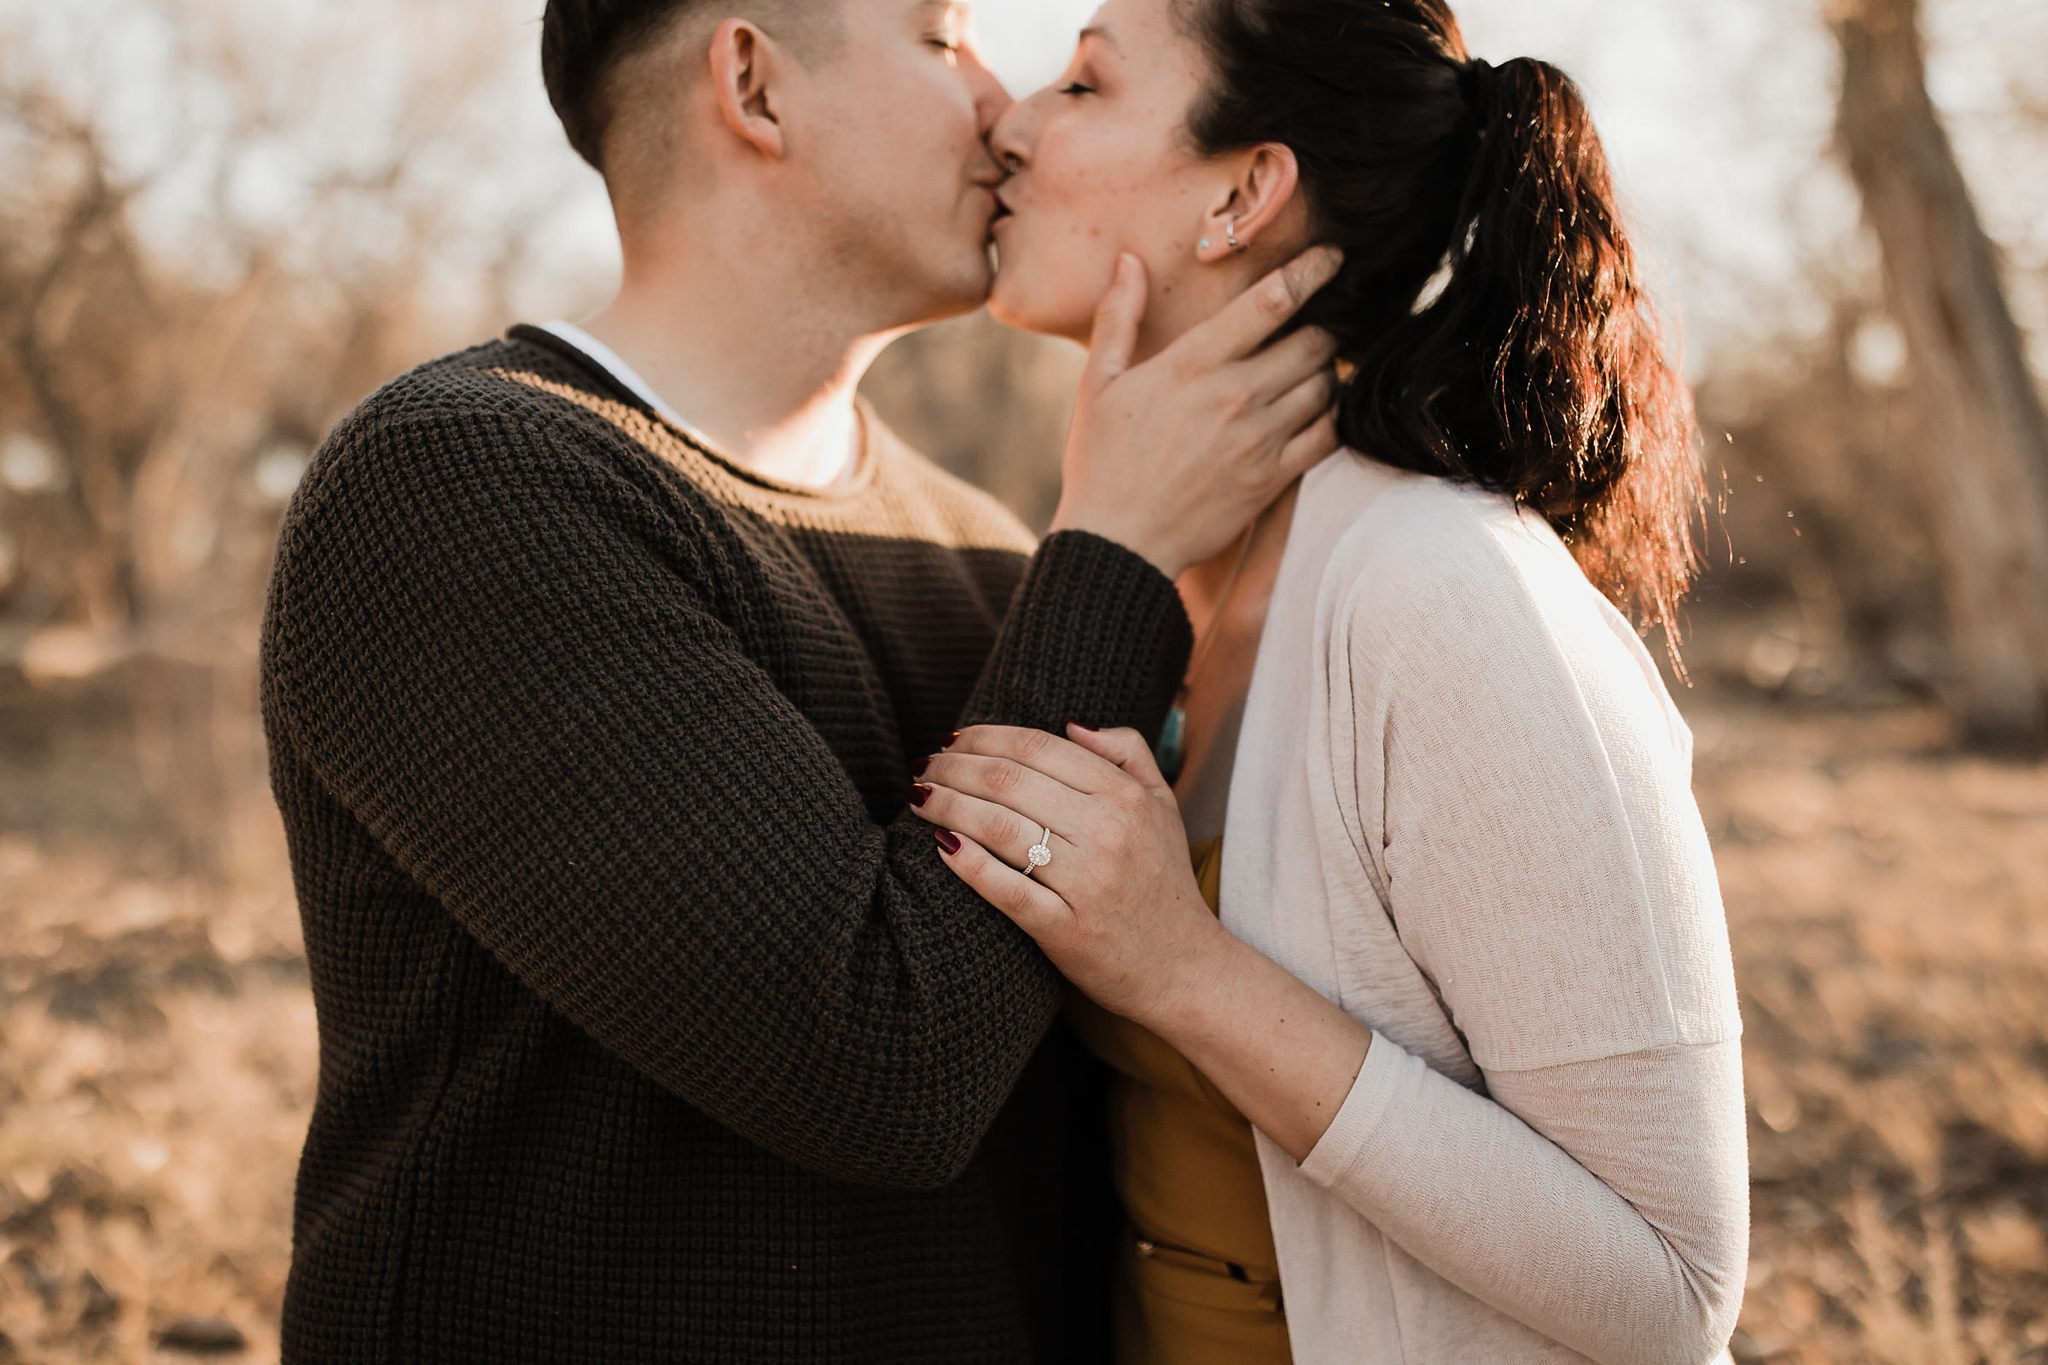 Alicia+lucia+photography+-+albuquerque+wedding+photographer+-+santa+fe+wedding+photography+-+new+mexico+wedding+photographer+-+new+mexico+wedding+-+engagement+-+new+mexico+engagemnt+-+outdoor+engagement_0001.jpg